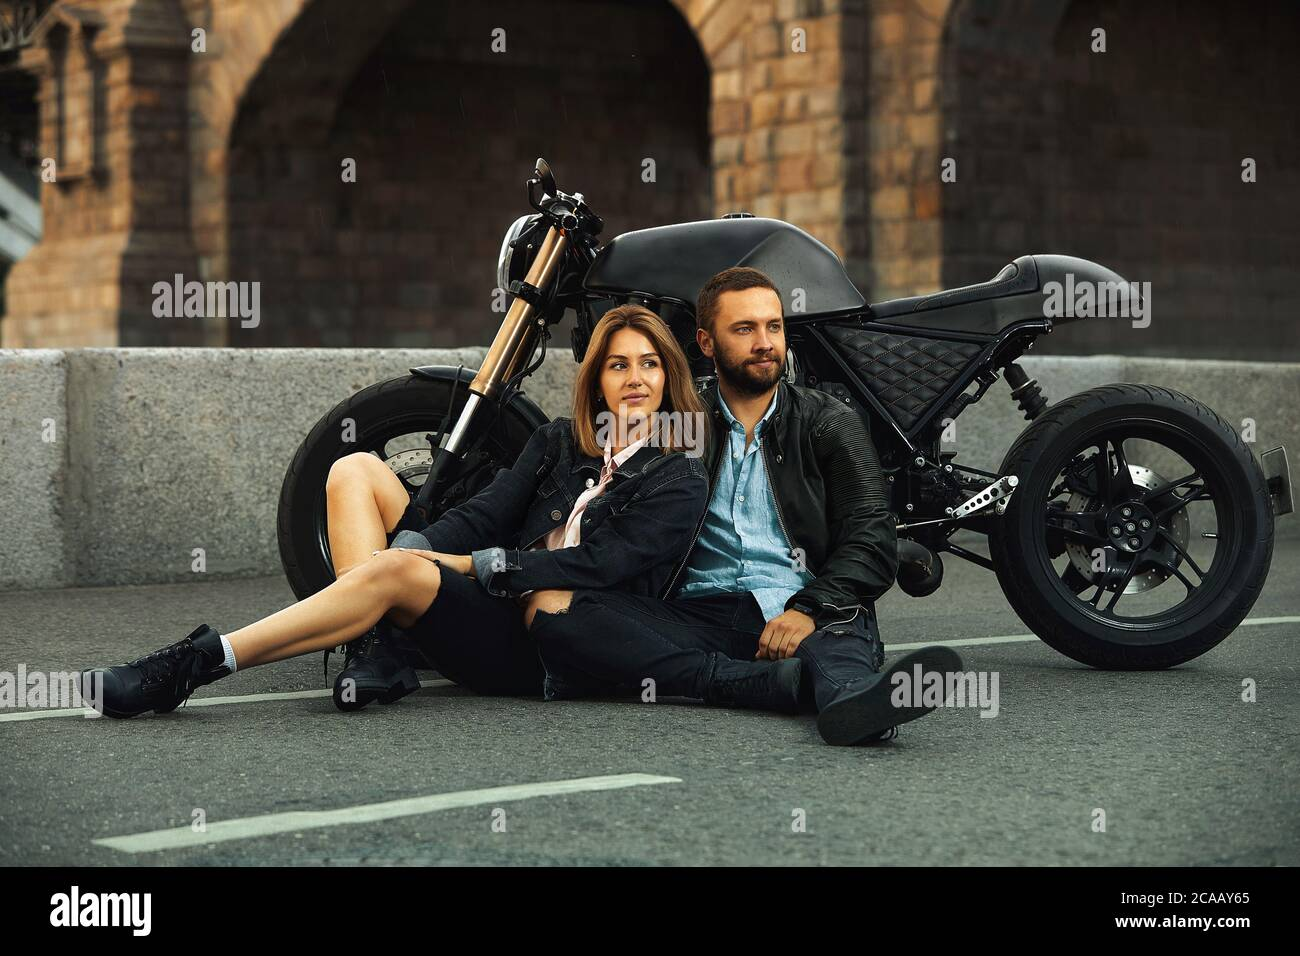 Biker Love High Resolution Stock Photography And Images Alamy